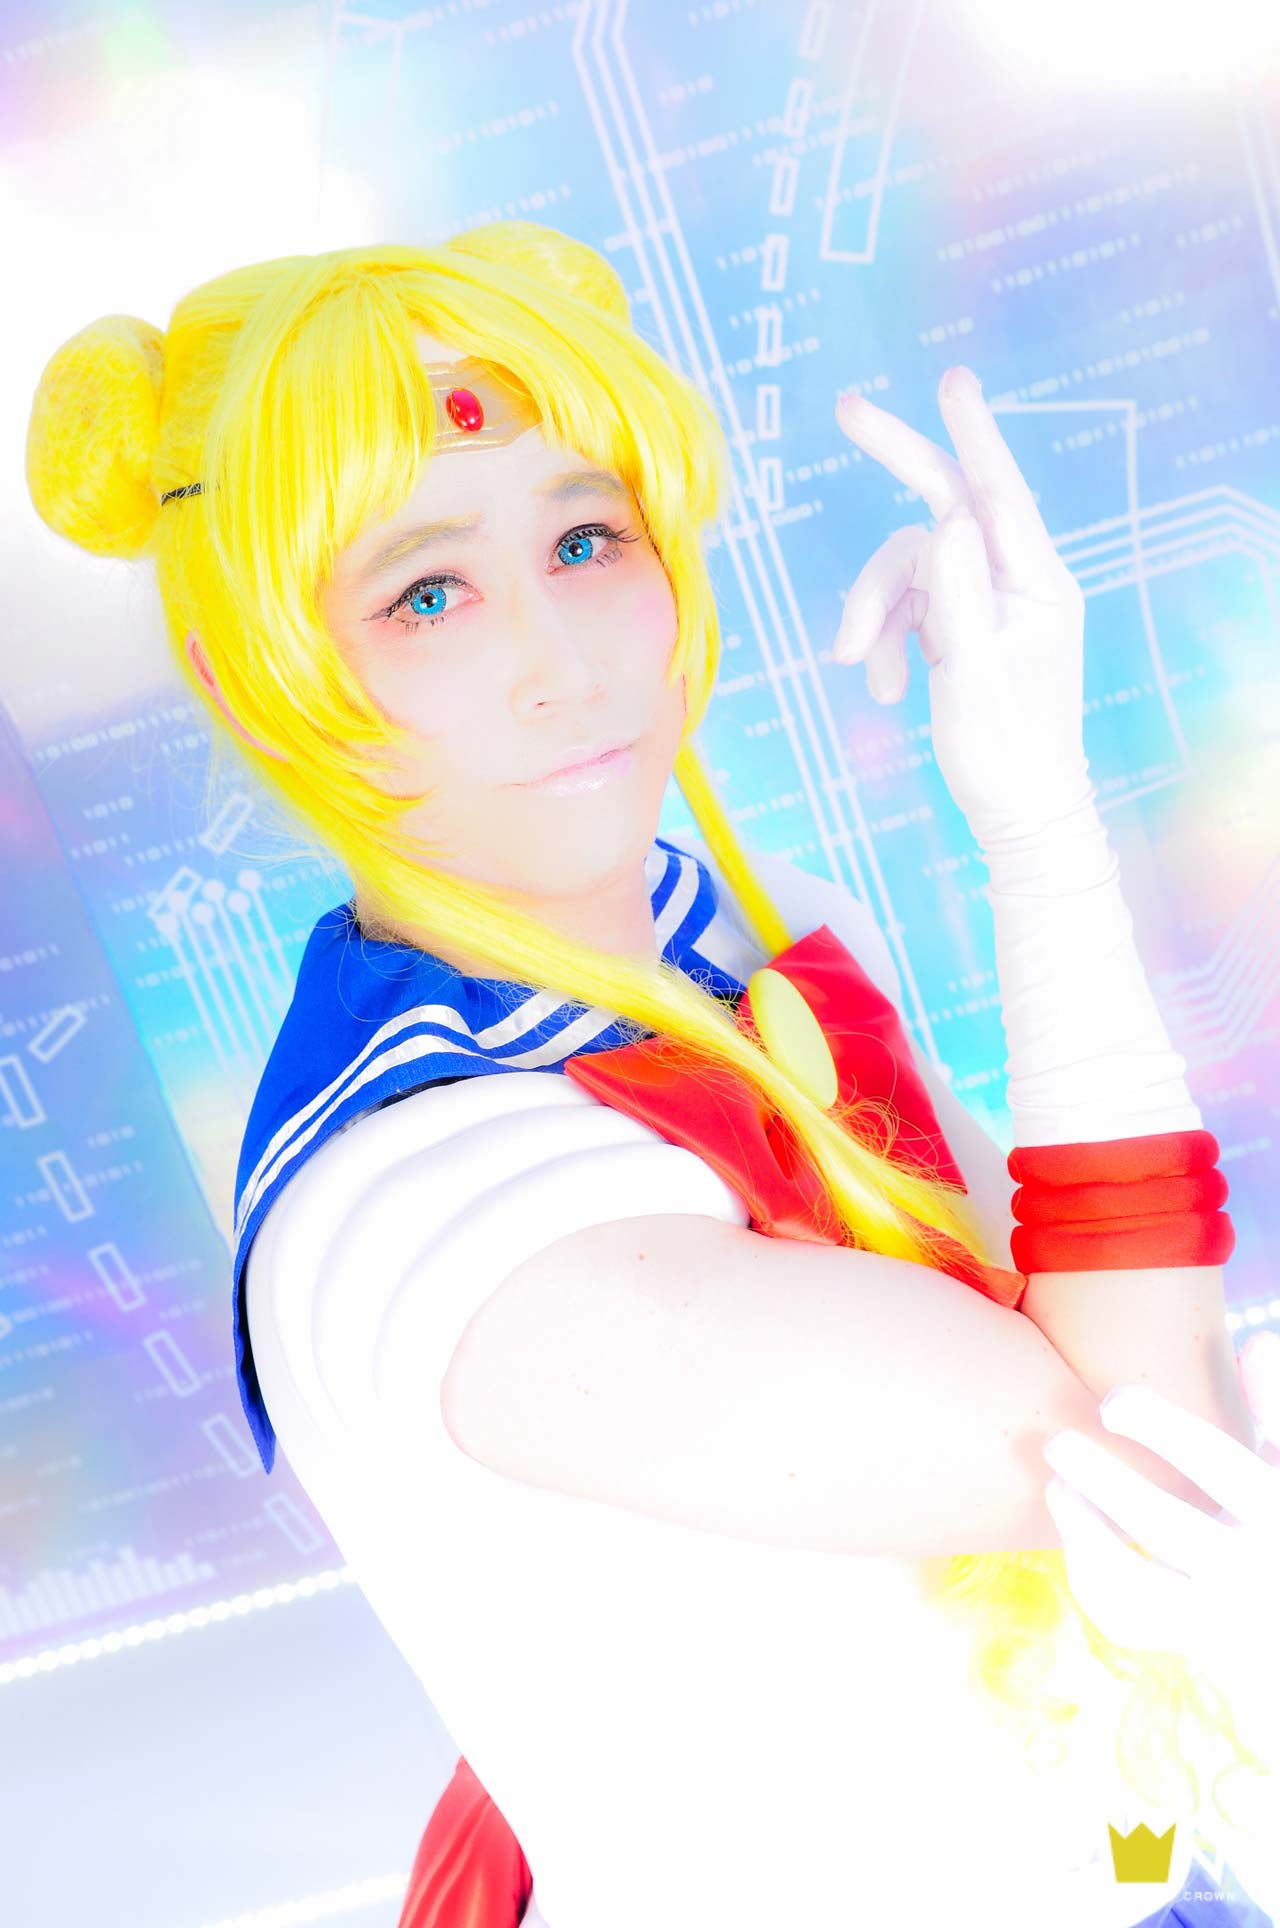 studio crown professional photo of sailor moon cosplay